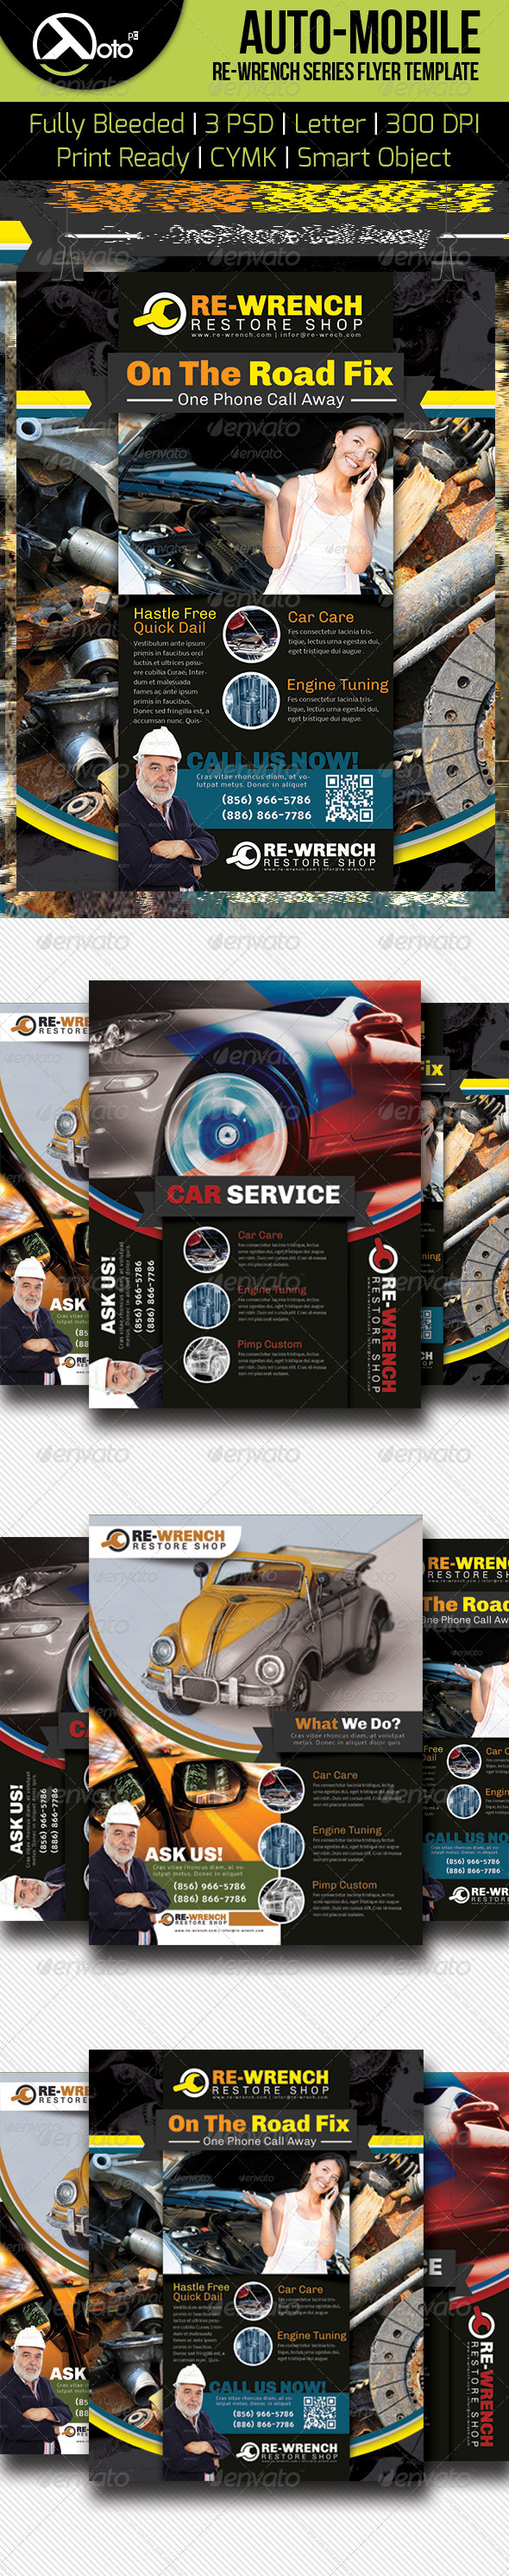 GraphicRiver Auto-Mobile Flyers 5283132